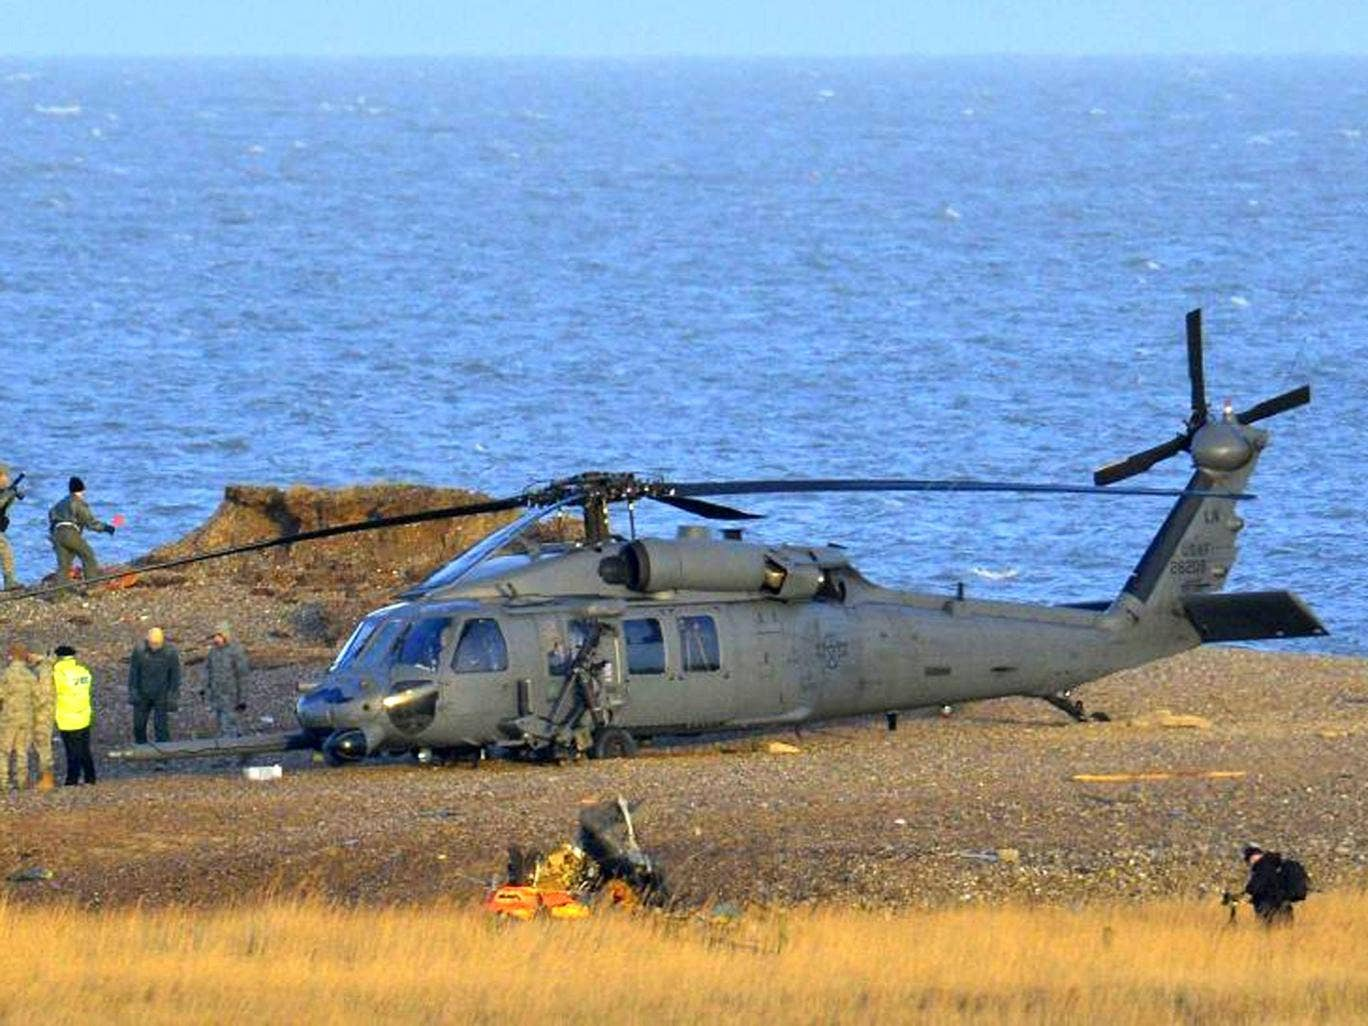 A Pave Hawk helicopter, military personnel and emergency services attend the scene of the crash on the coast near Cley